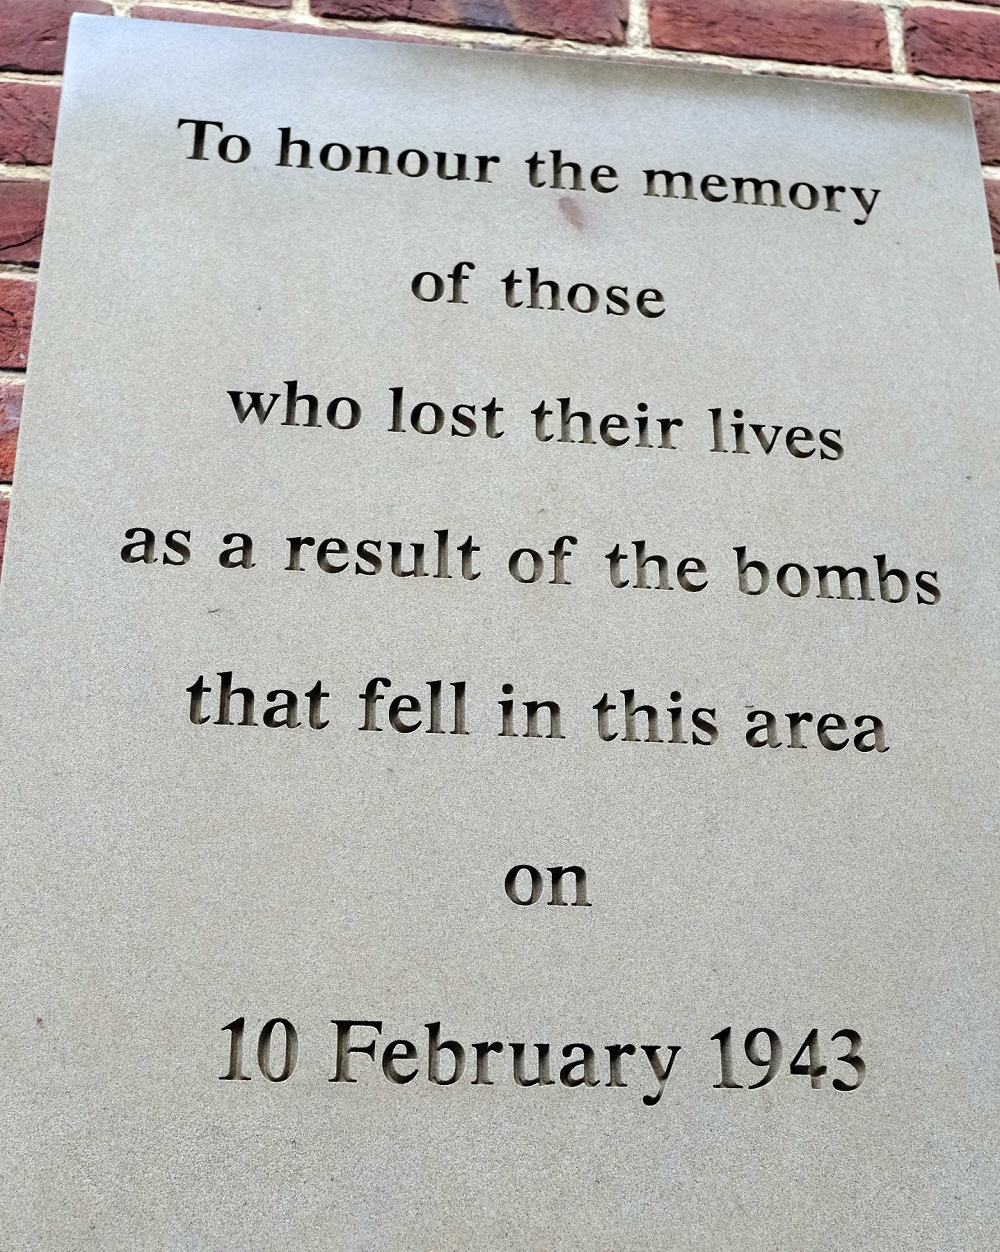 JA_BRK_120218_BombingRemembrancePlaque_11